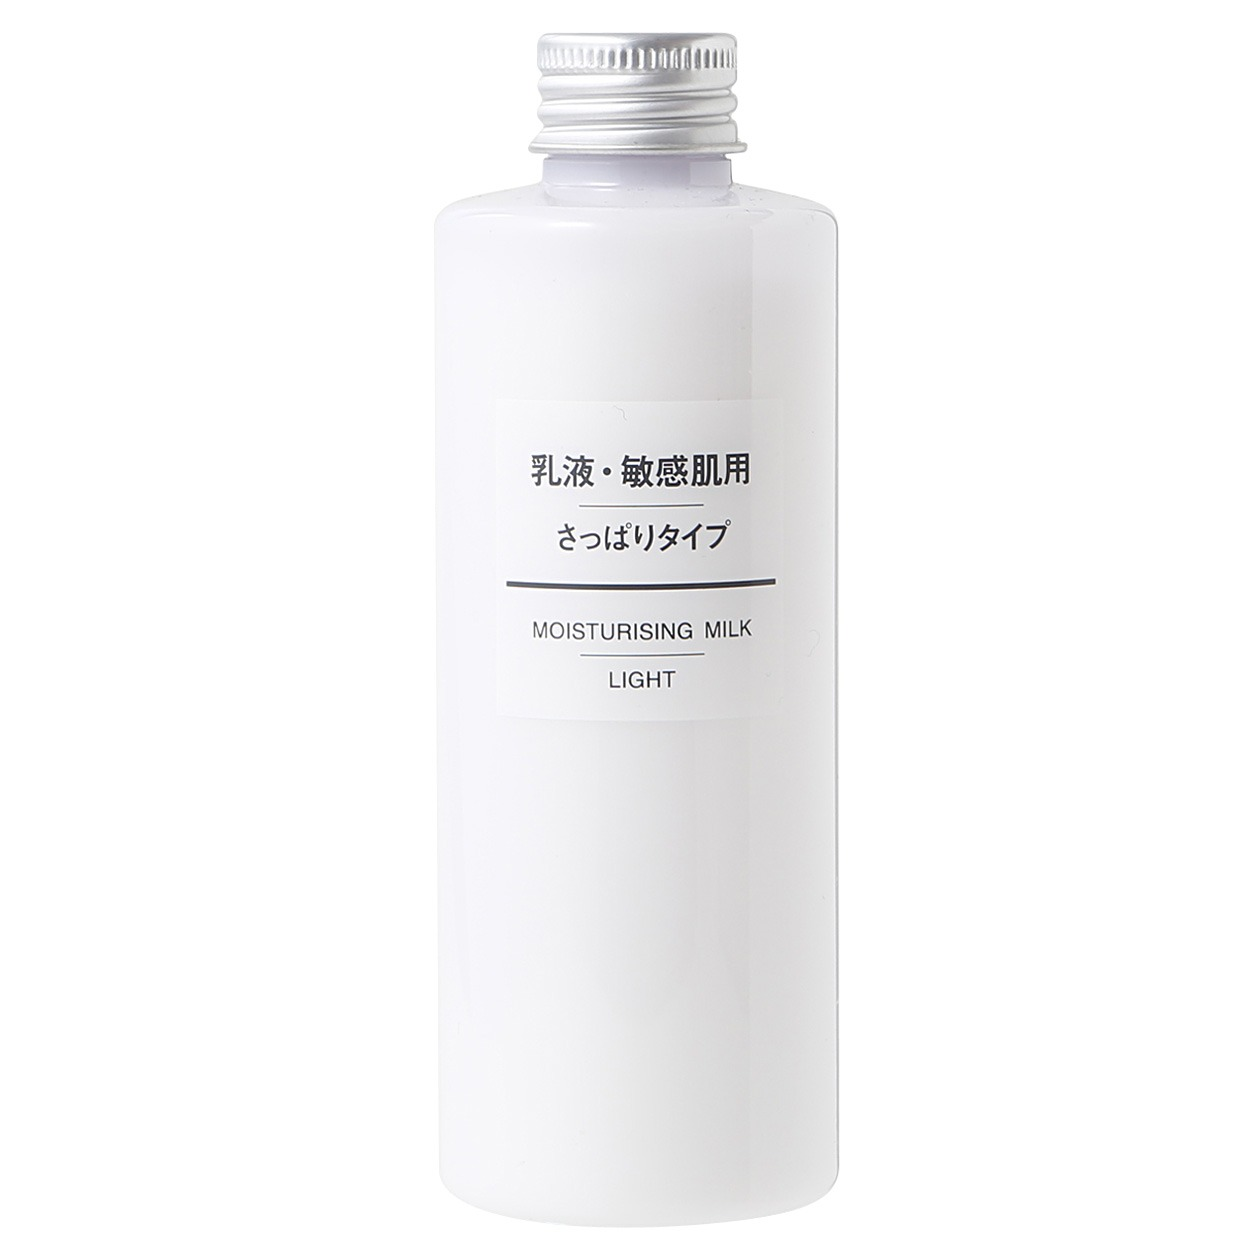 Muji Sensitive Moisturising Milk